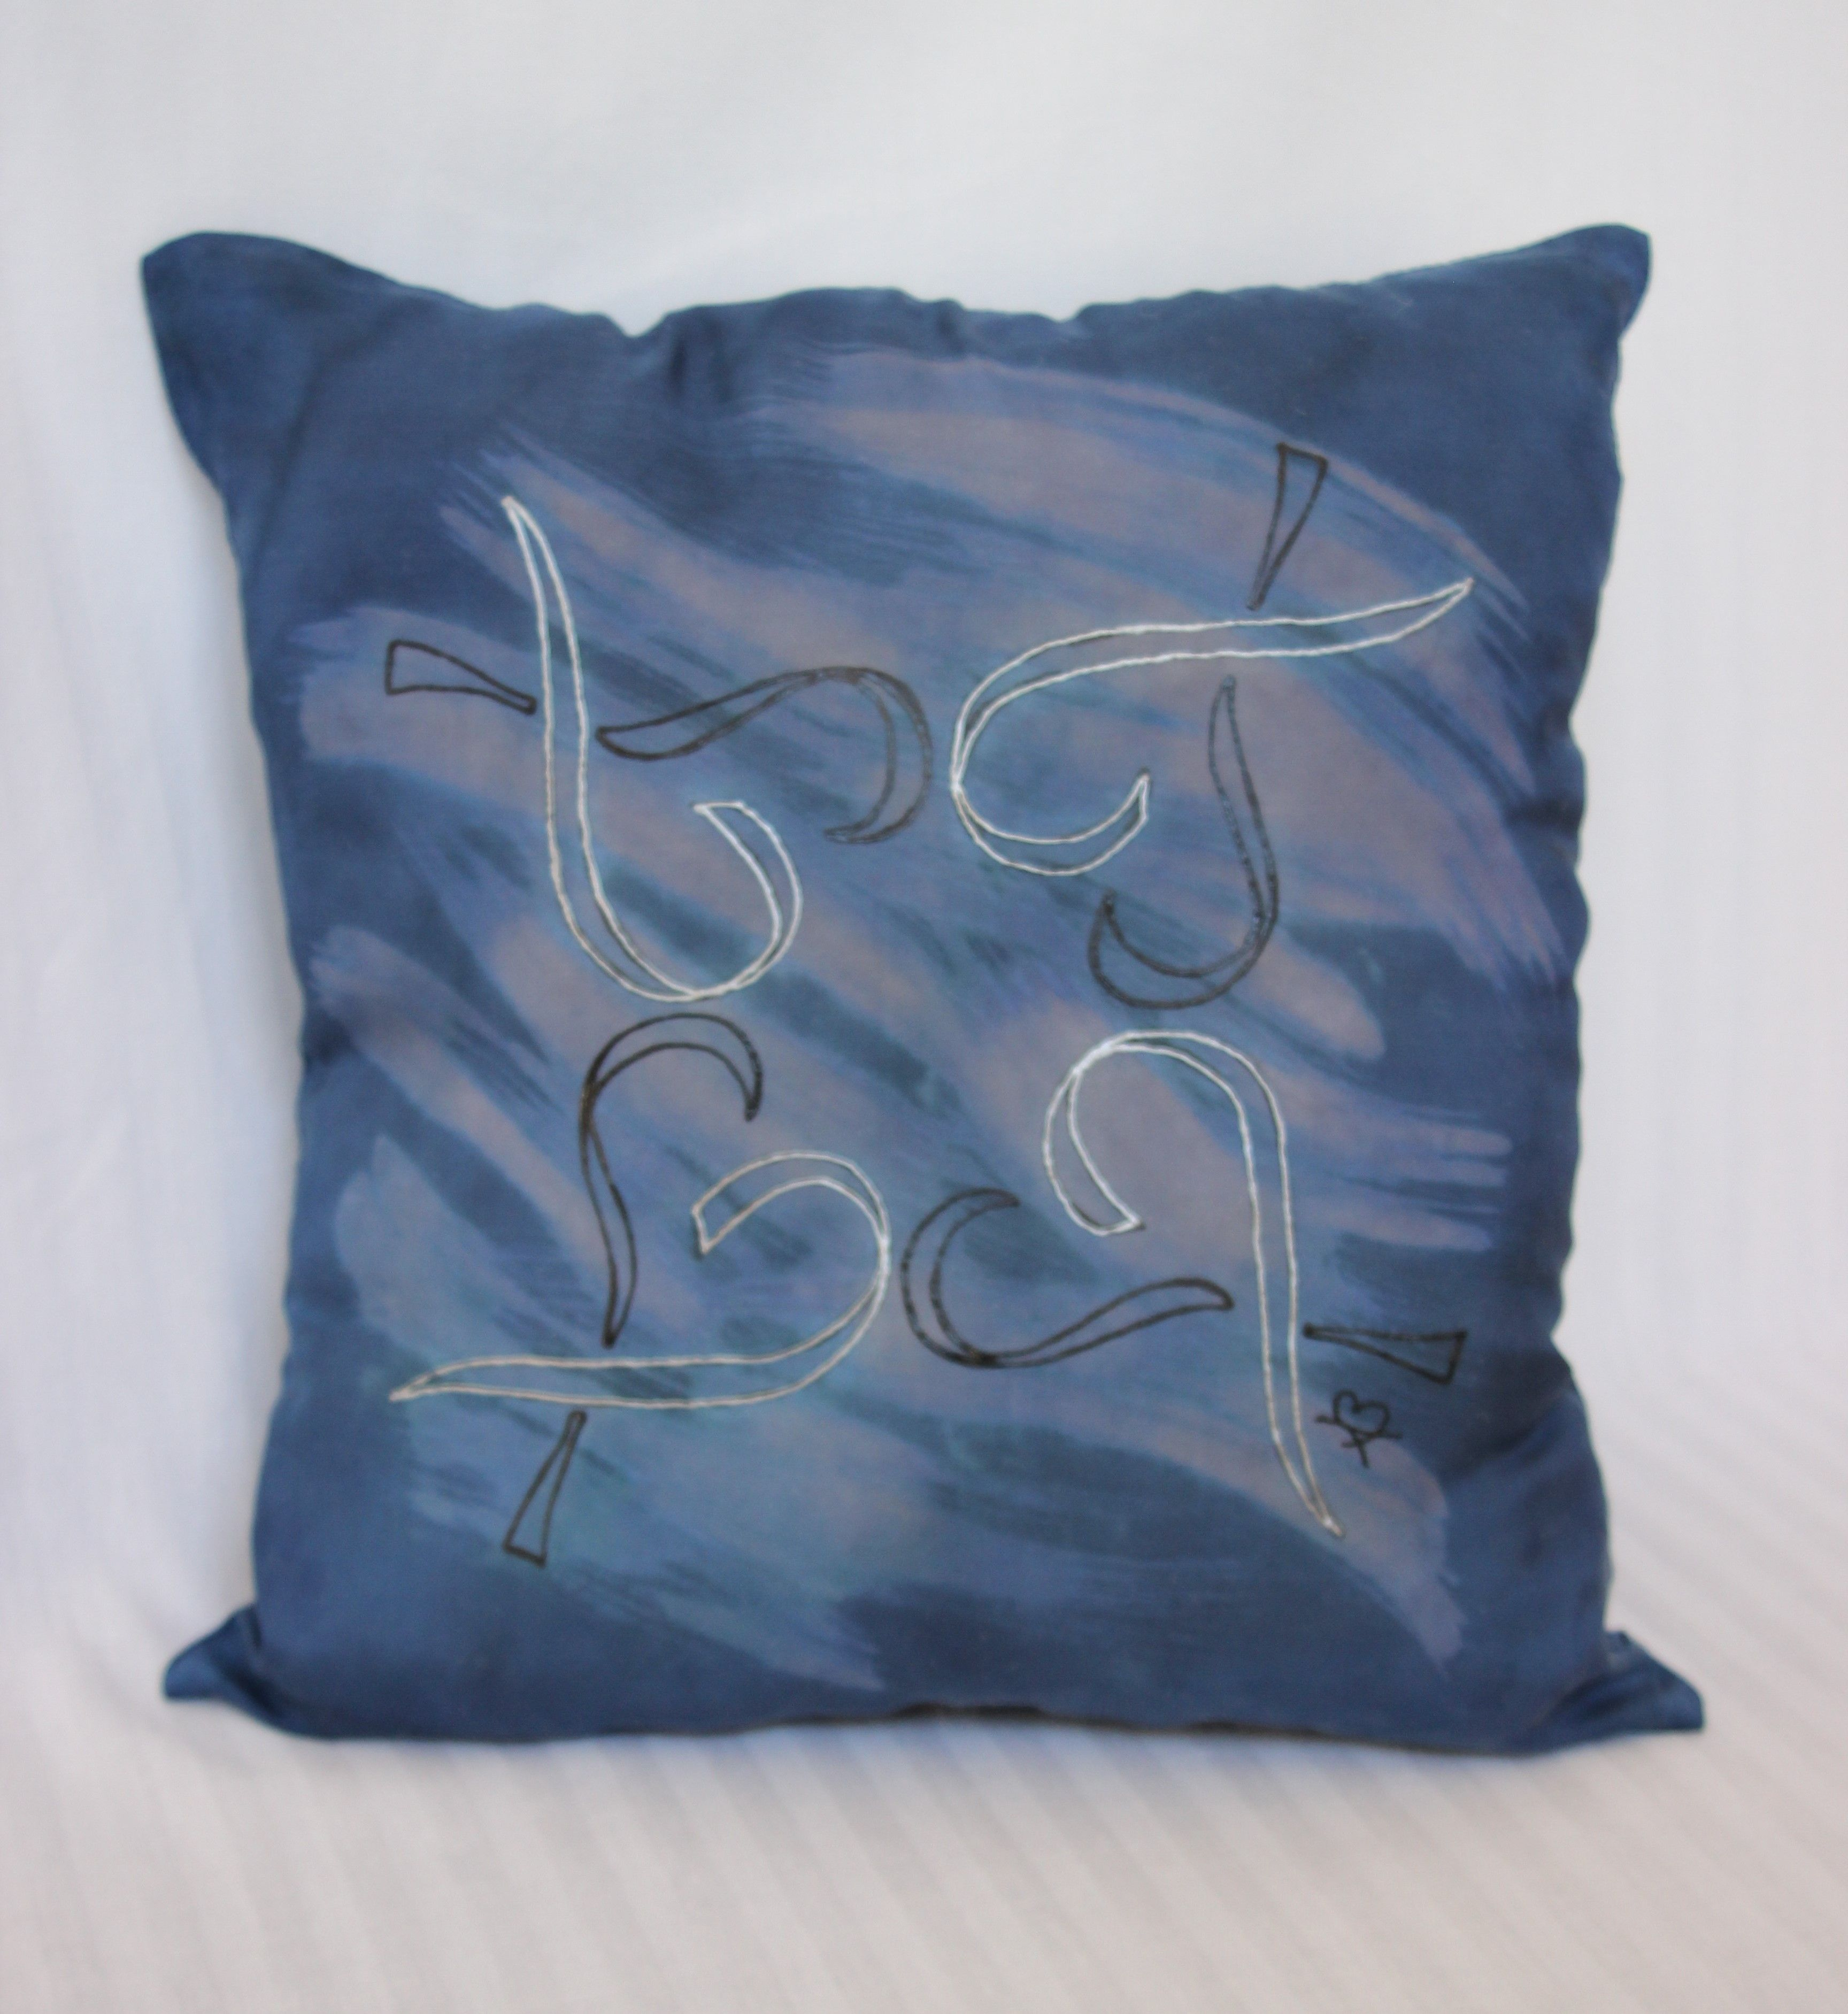 Handpainted decorative silk pillow cover with a heart and cancer